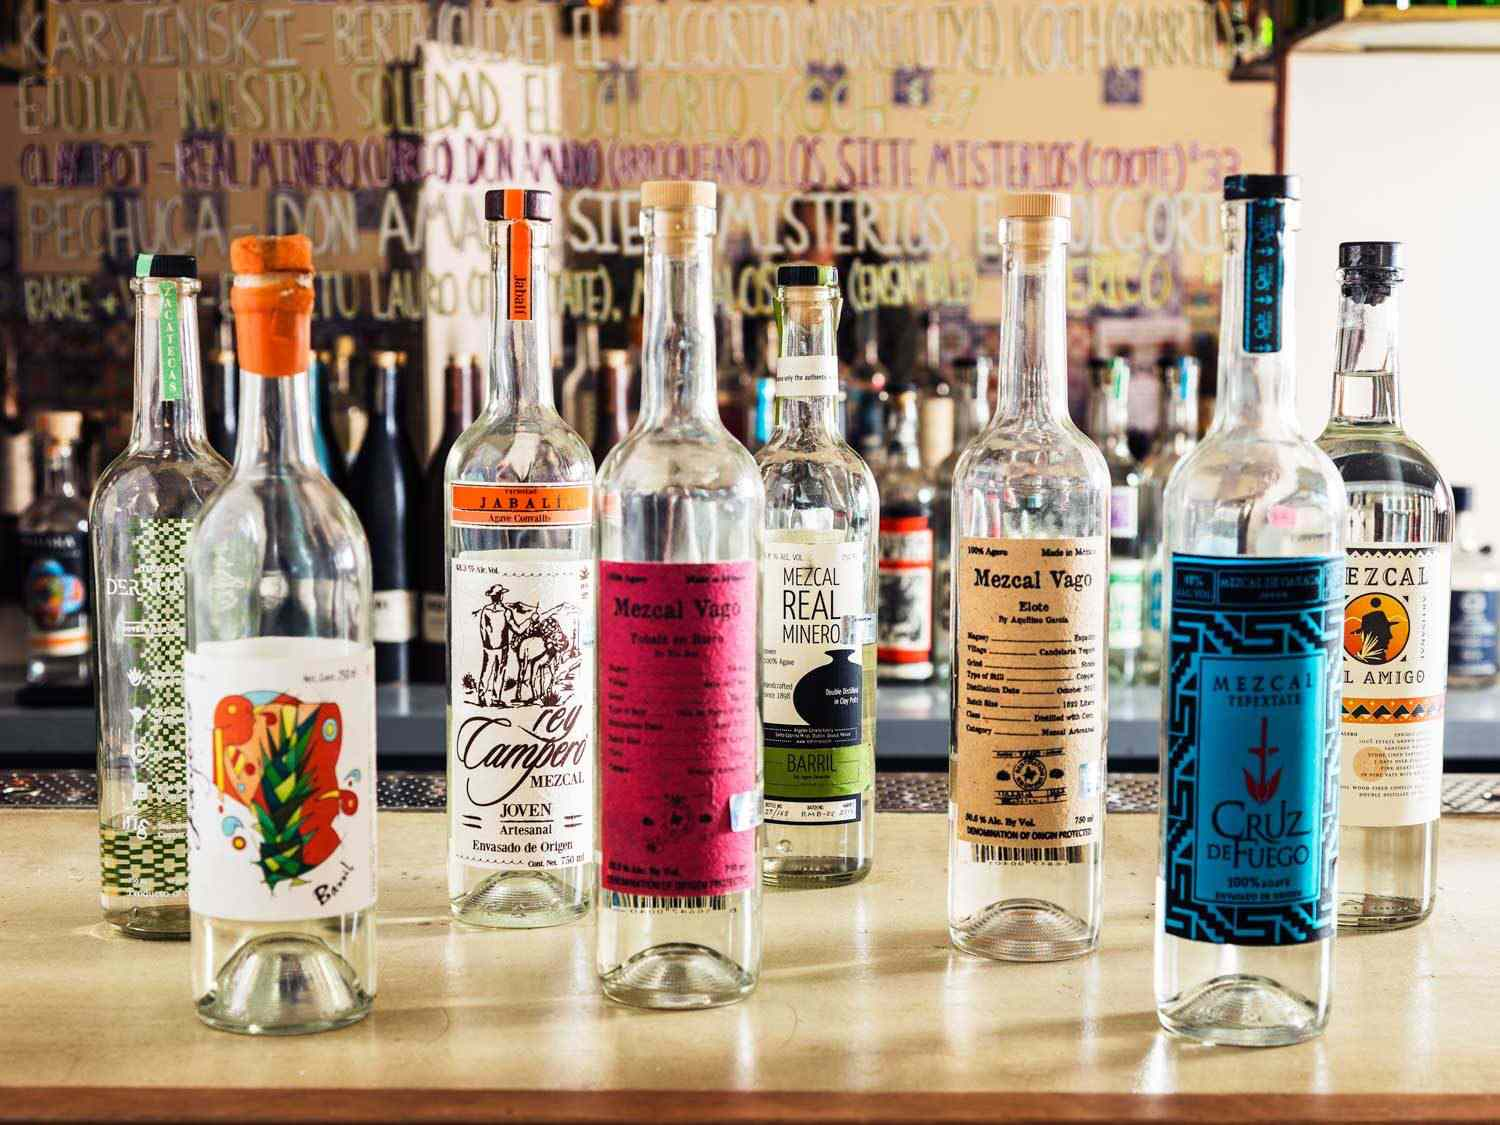 A selection of tequilas in bottles on a bar counter at Madre Mezcaleria.